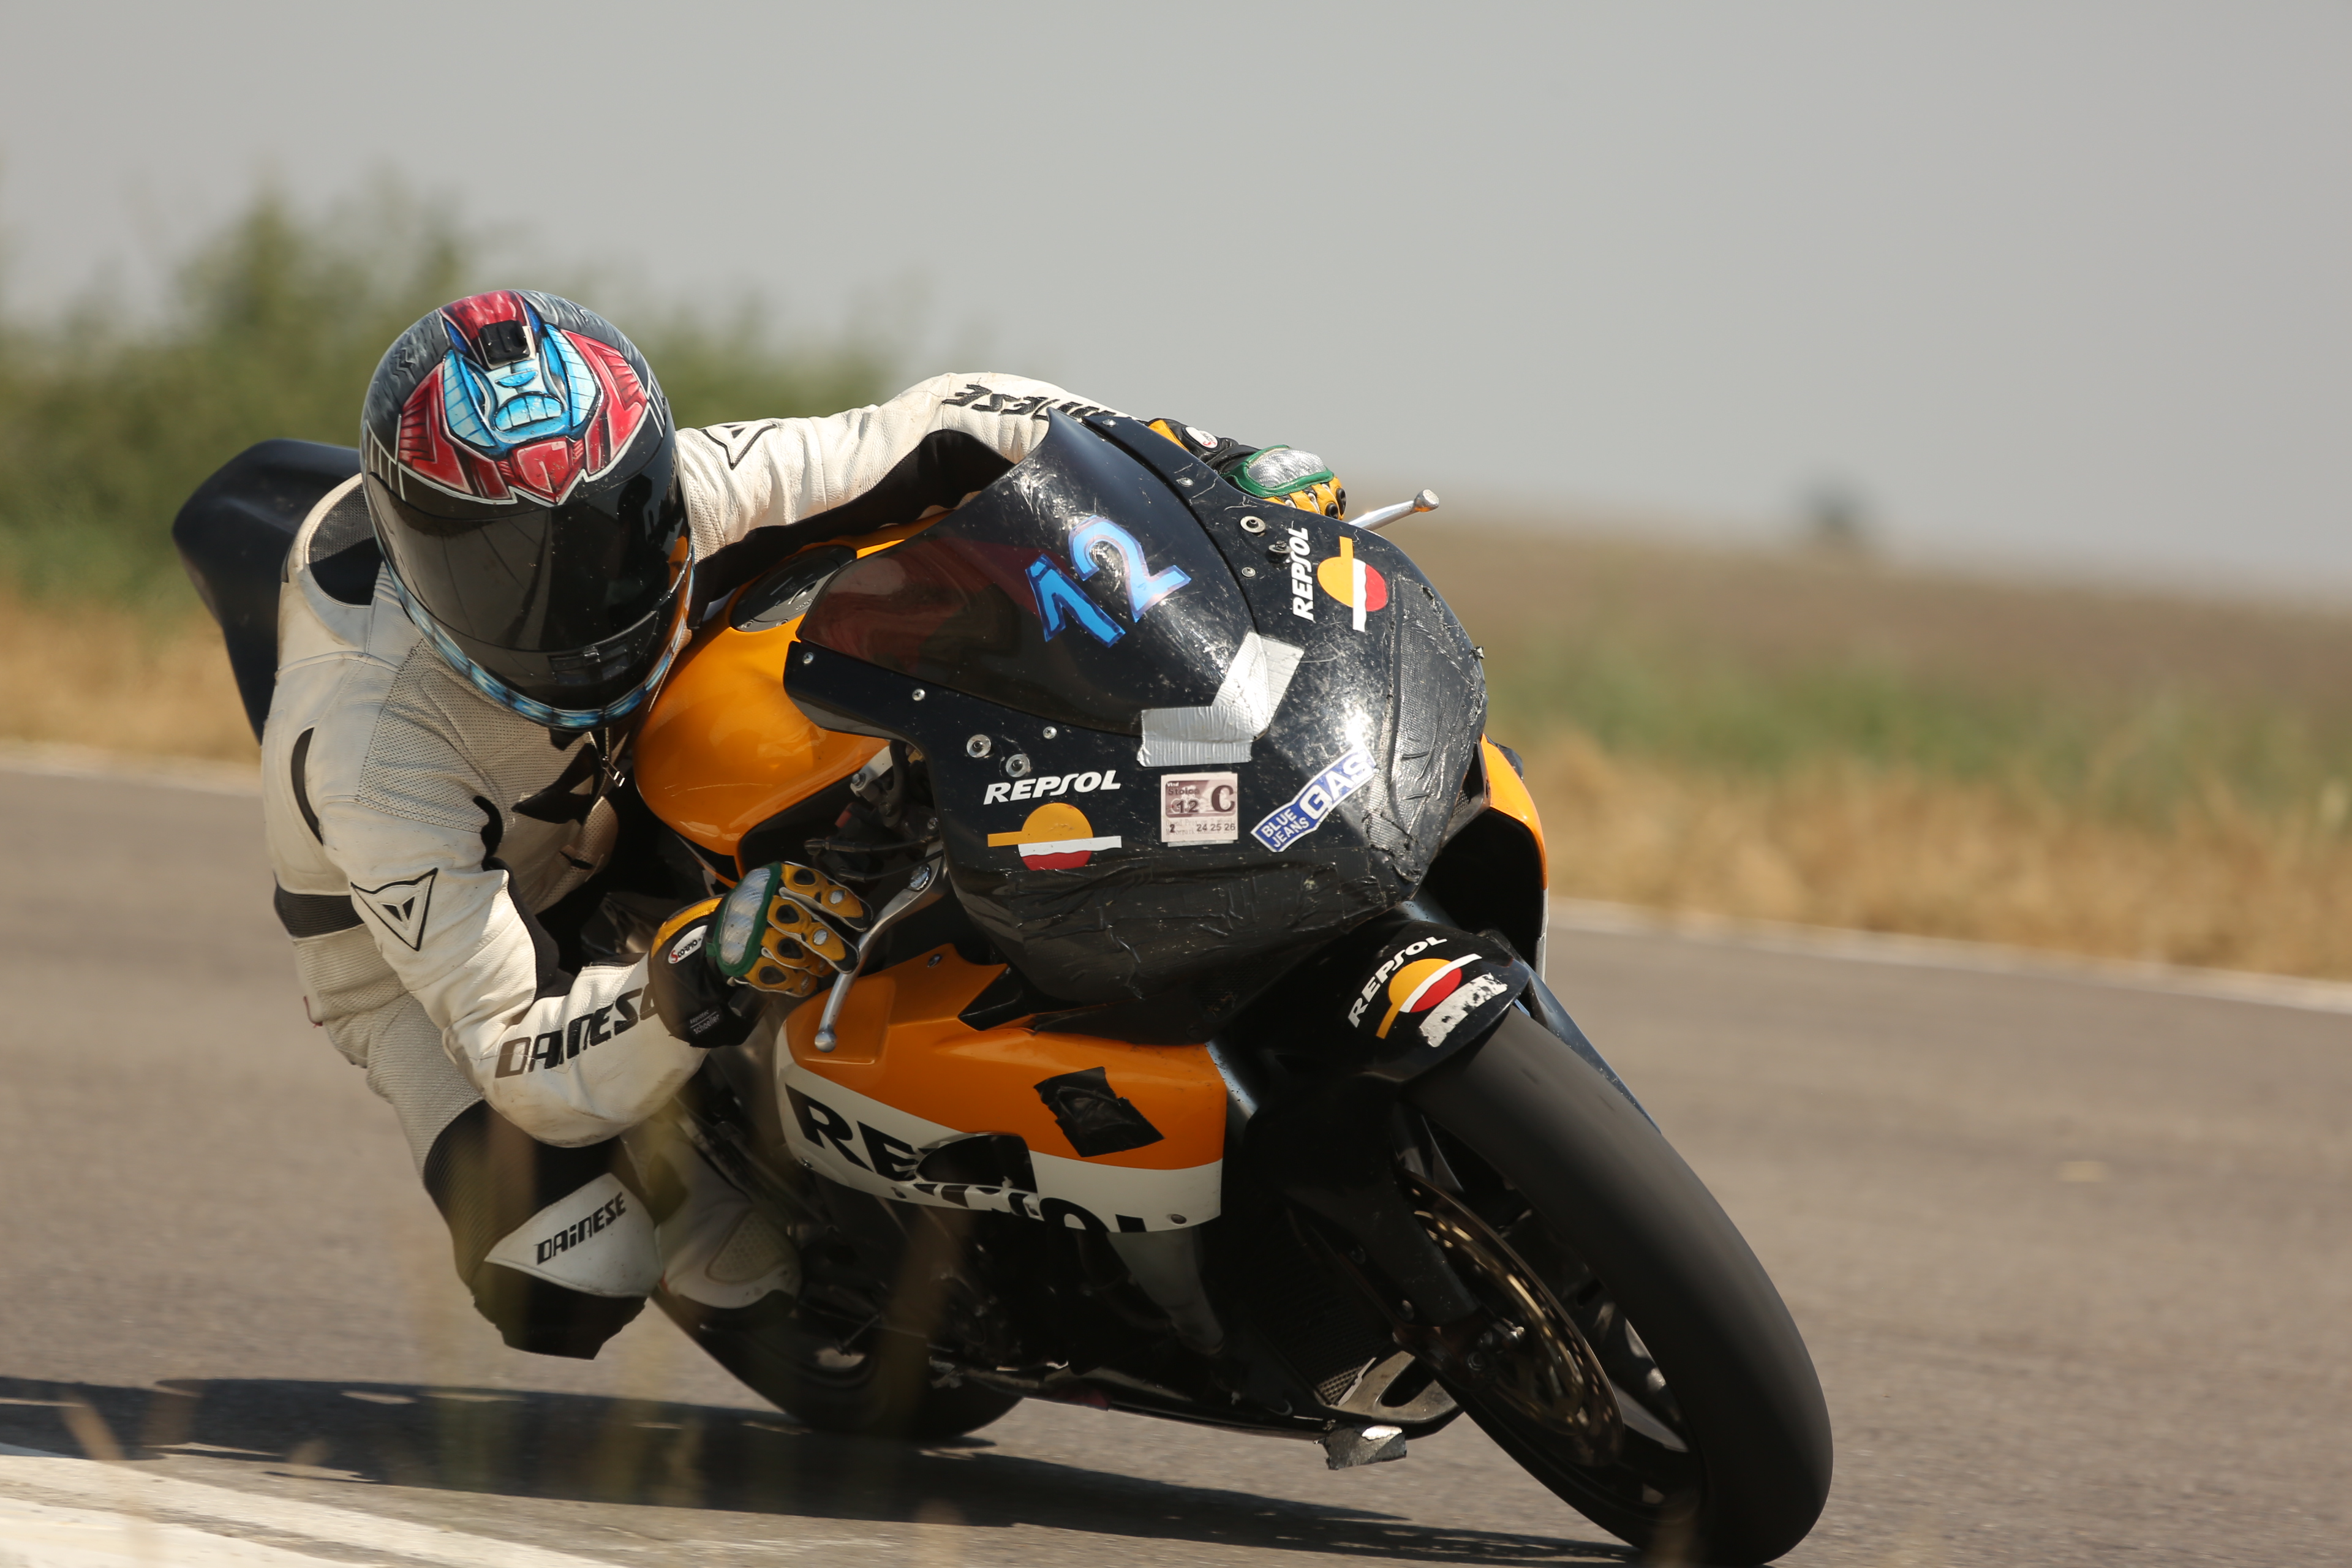 Honda CBR1000RR on turn, Bike, Cbr, Honda, Motorcycle, HQ Photo